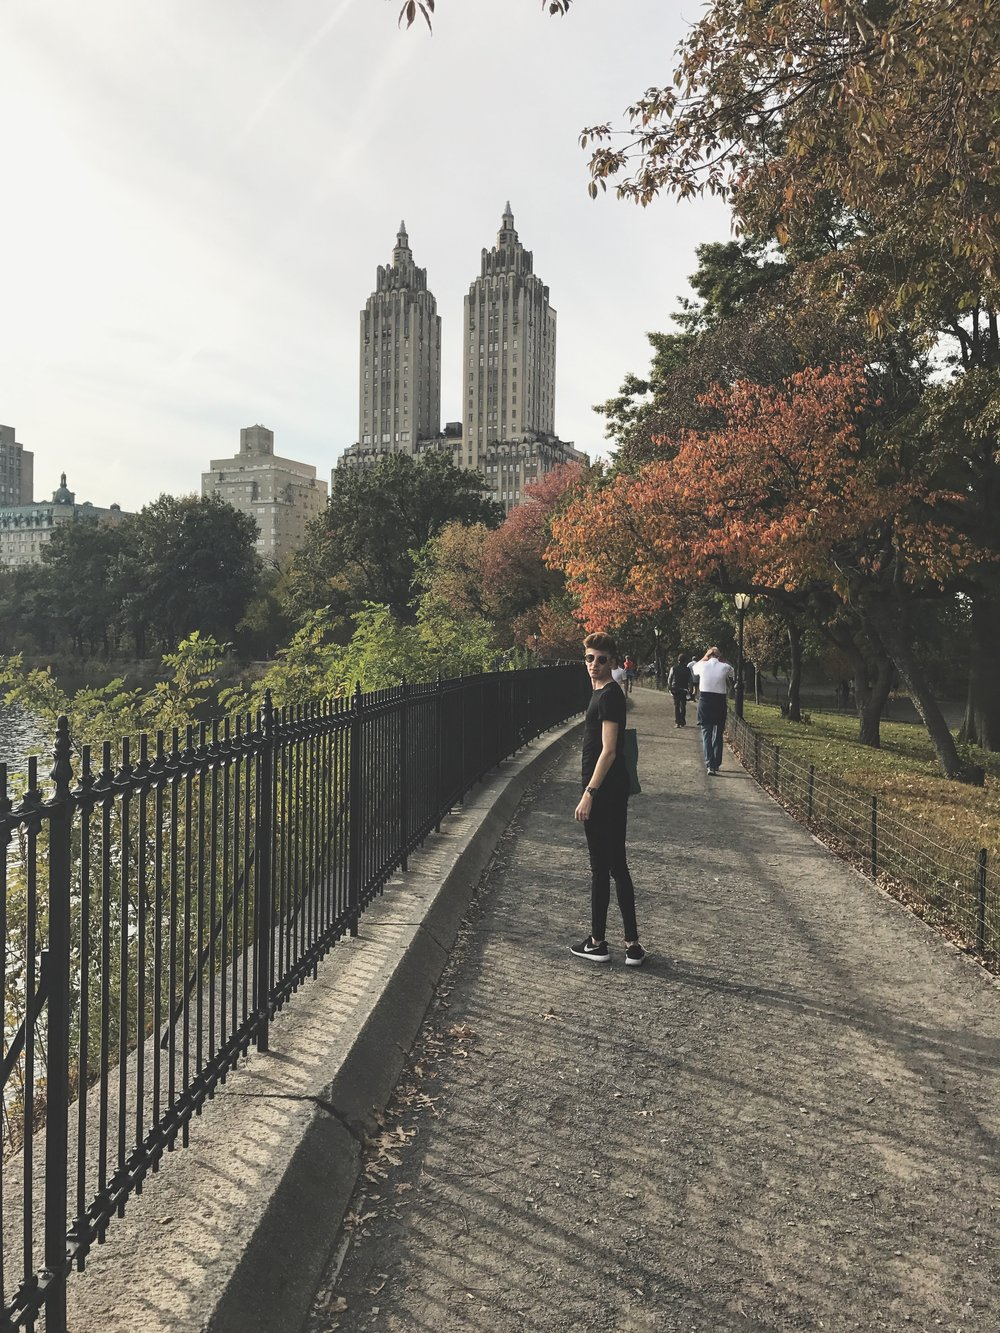 Let's take a walk in the park, Central Park.